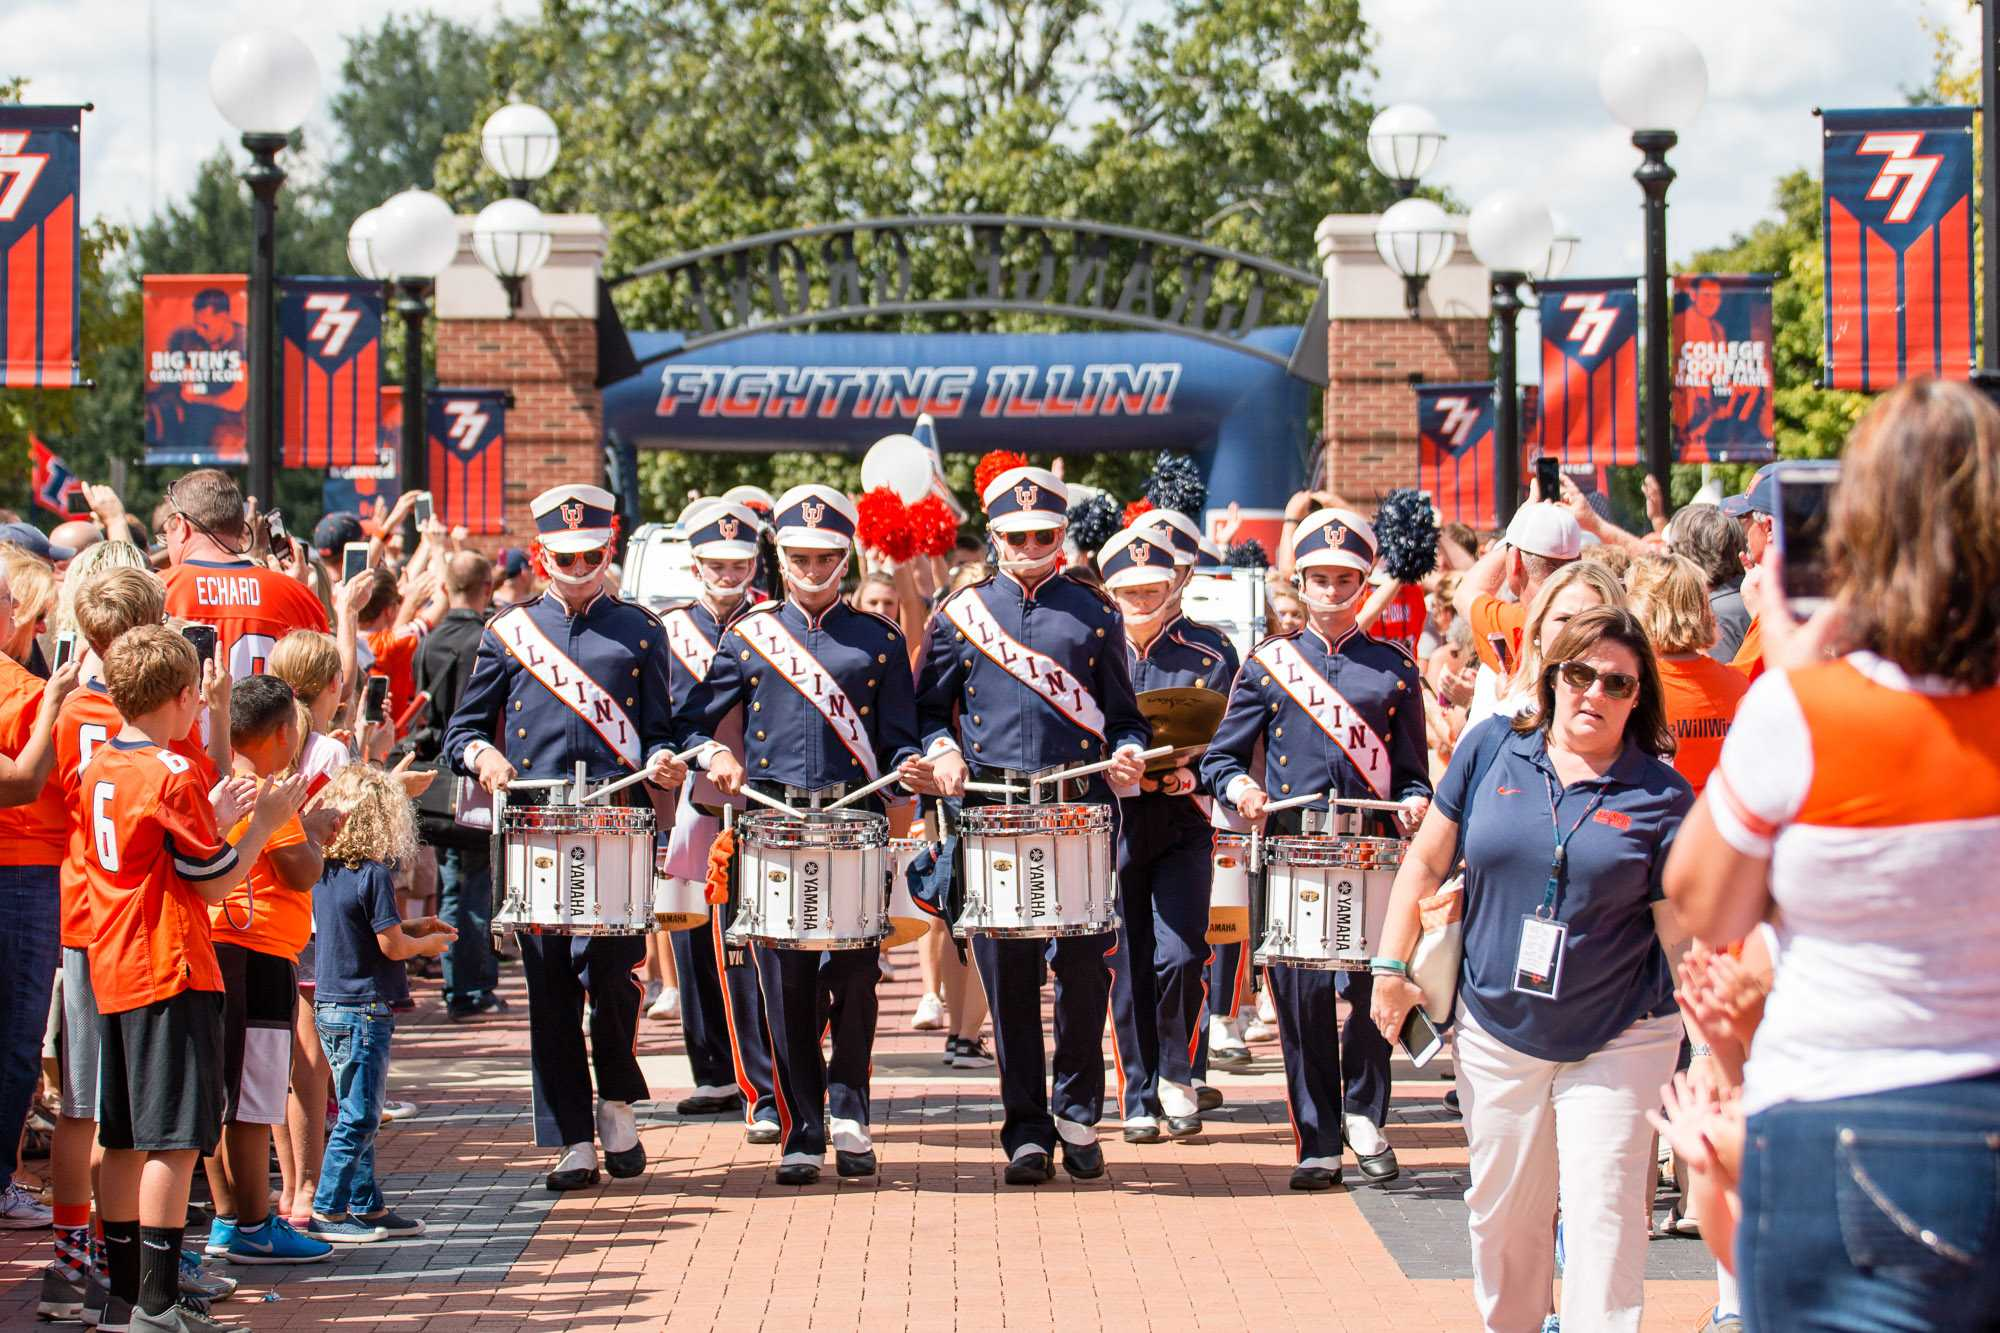 The drum line escorts the football team into Grange Grove before the game against Murray State at Memorial Stadium on Saturday, September 3.